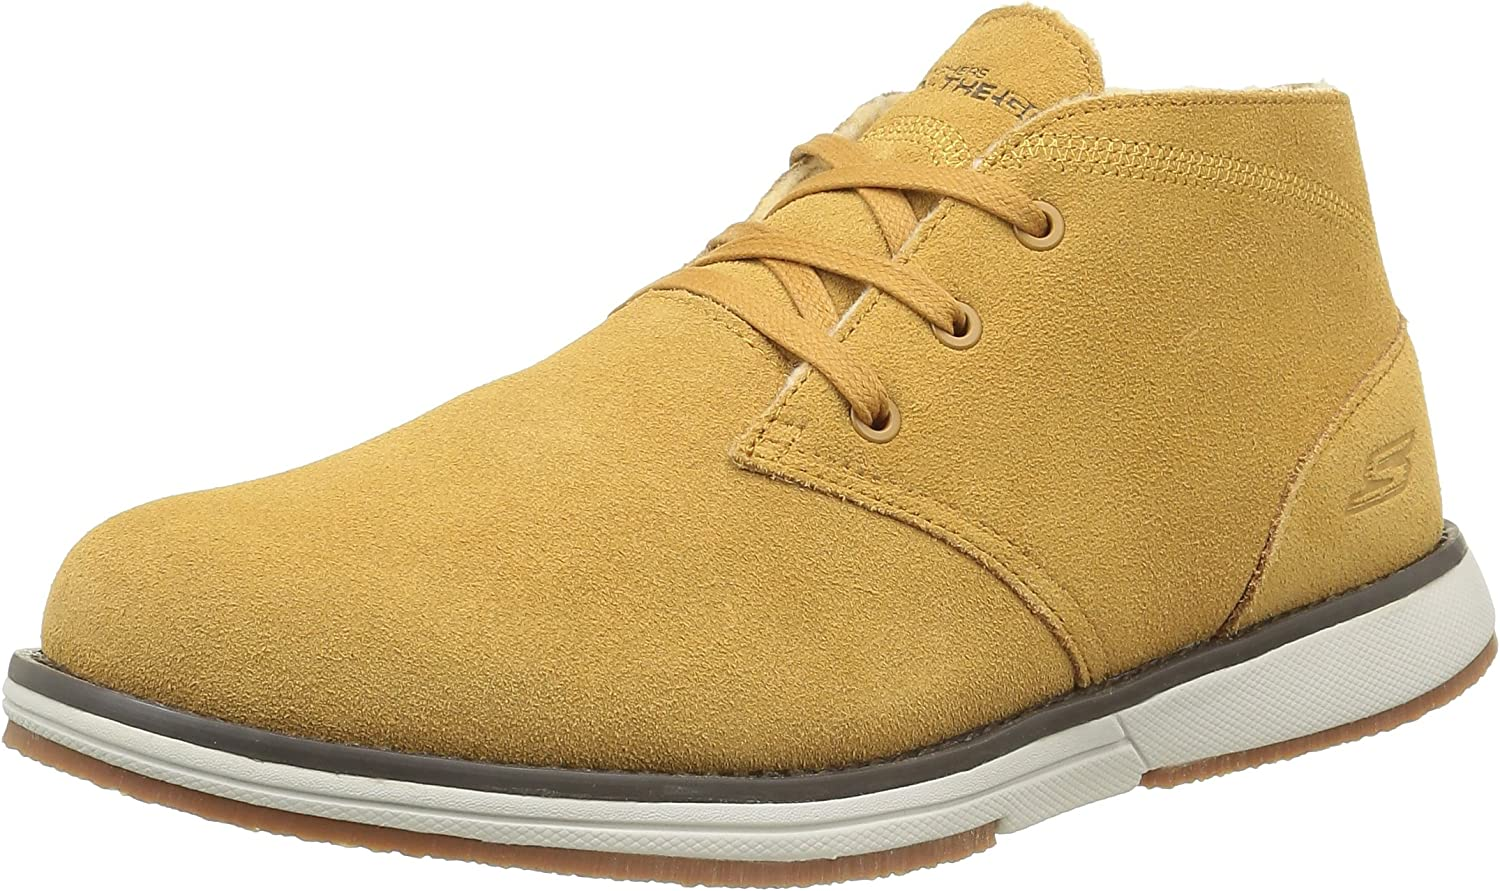 Skechers On The Go, Men's Lace-Up shoes